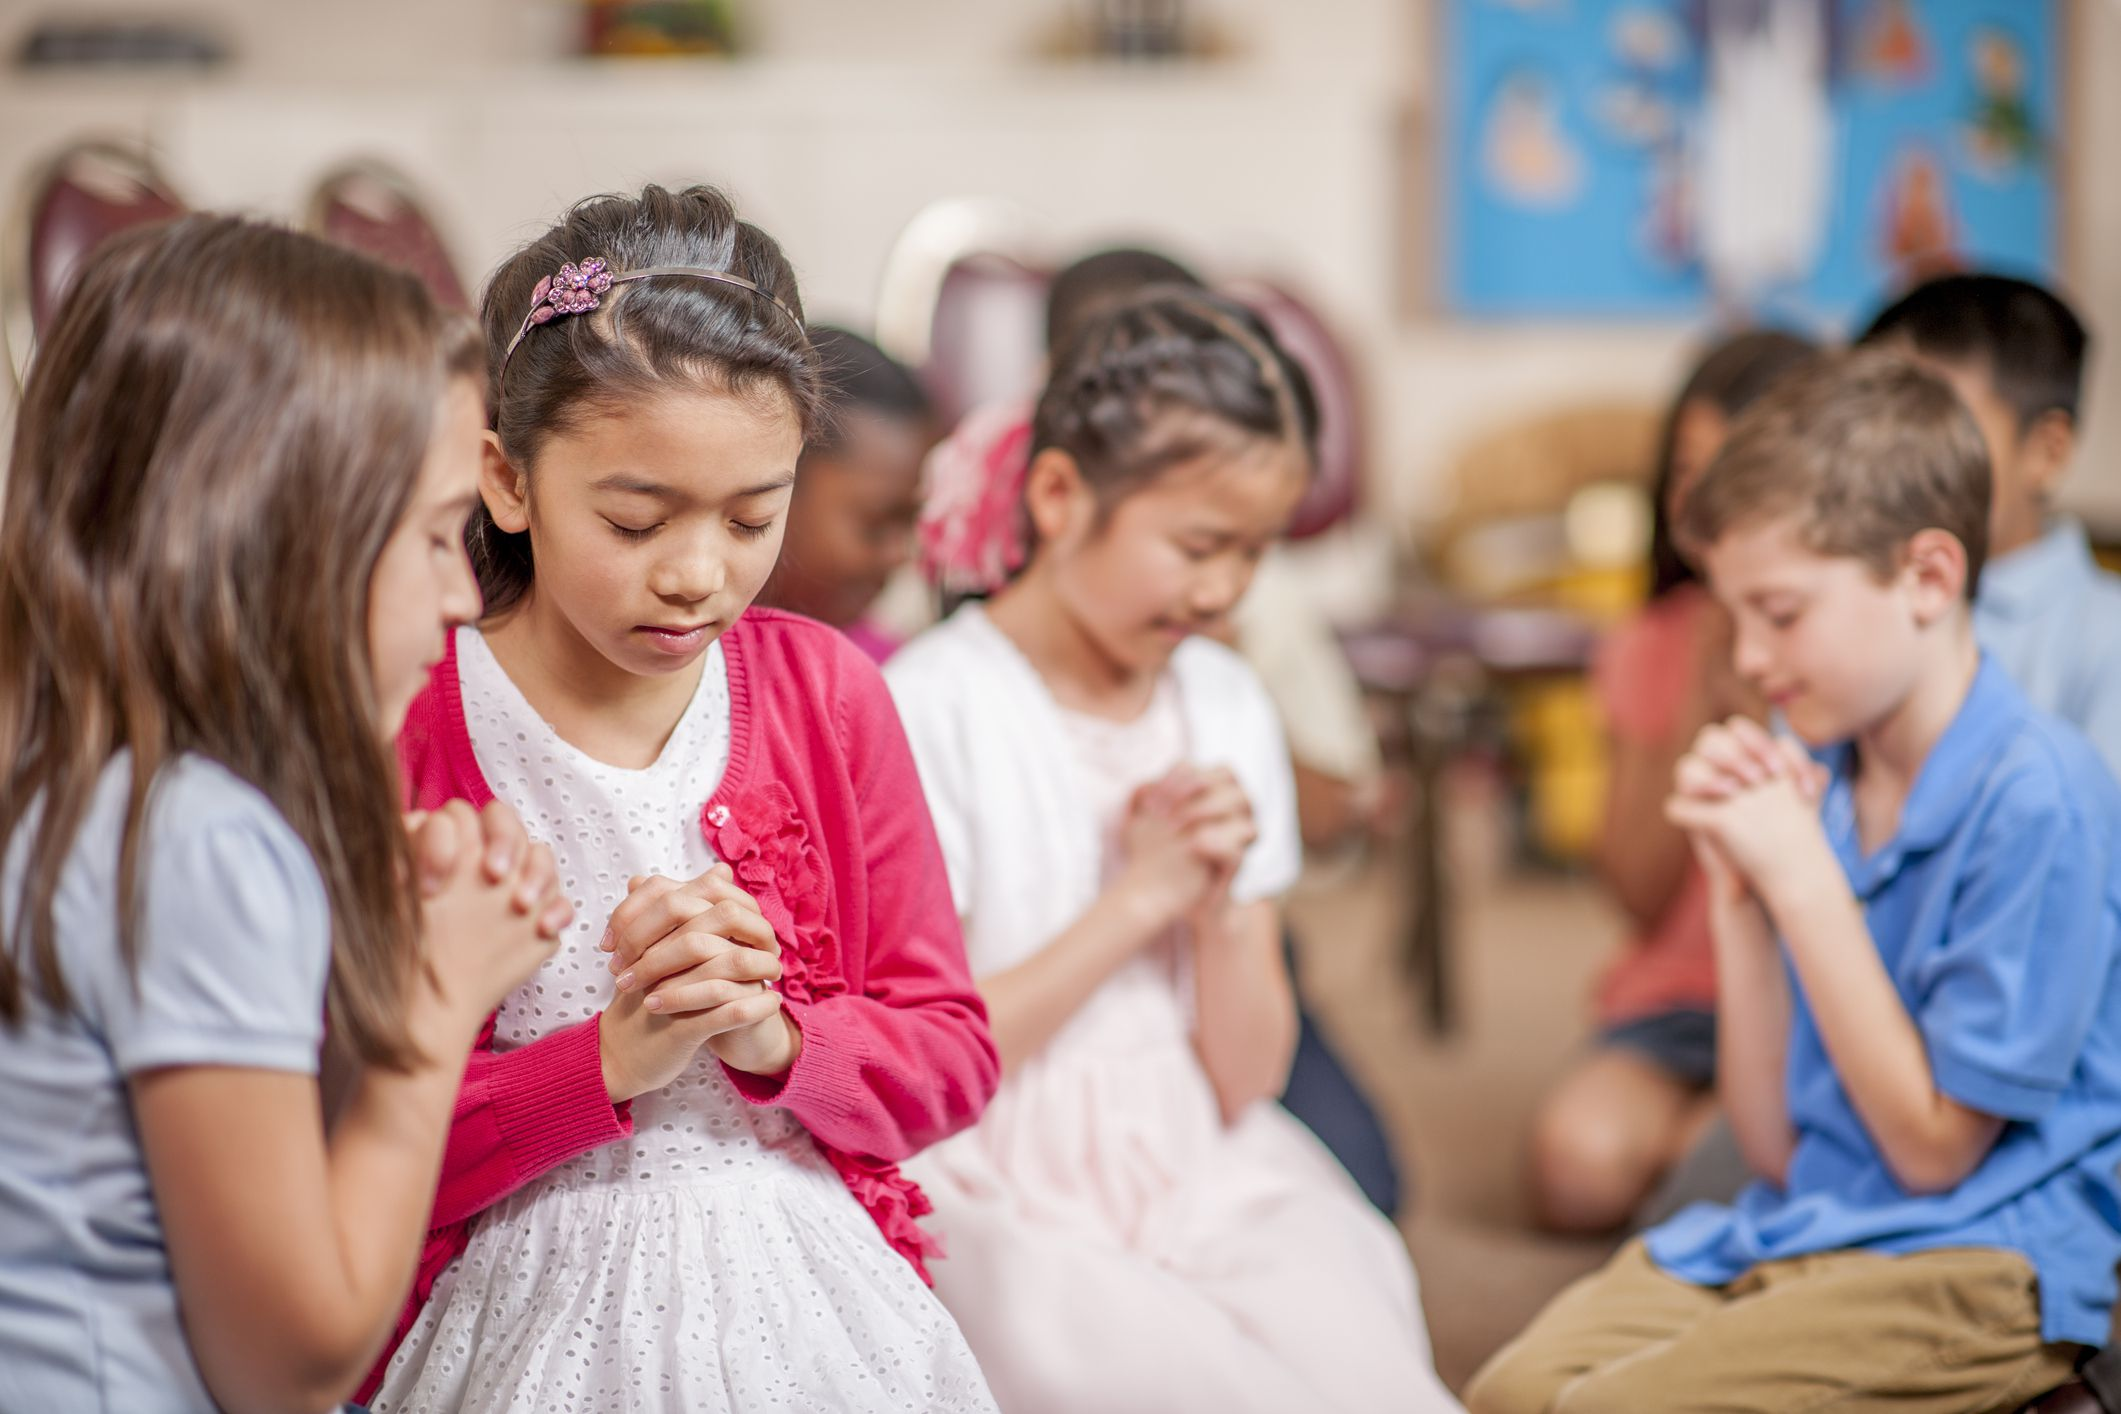 4 Fun Prayer Activities For Kids To Learn How To Pray